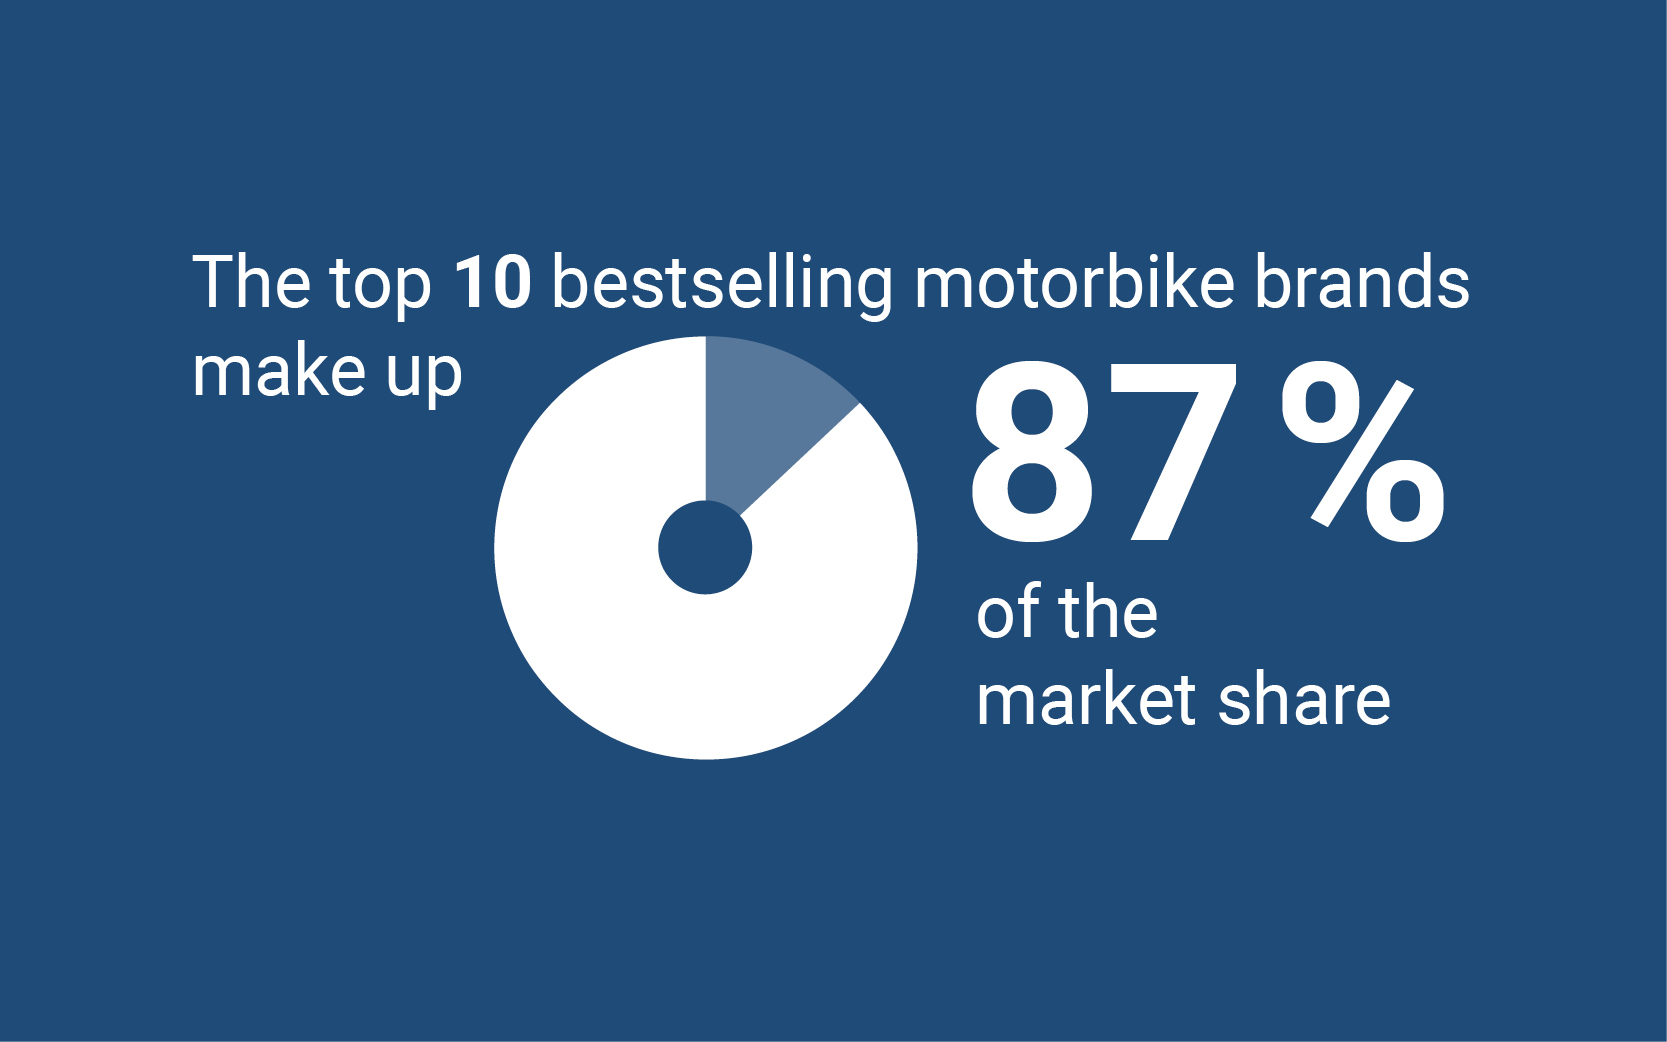 Top 10 bestselling motorbike brands make up 87% of the market share